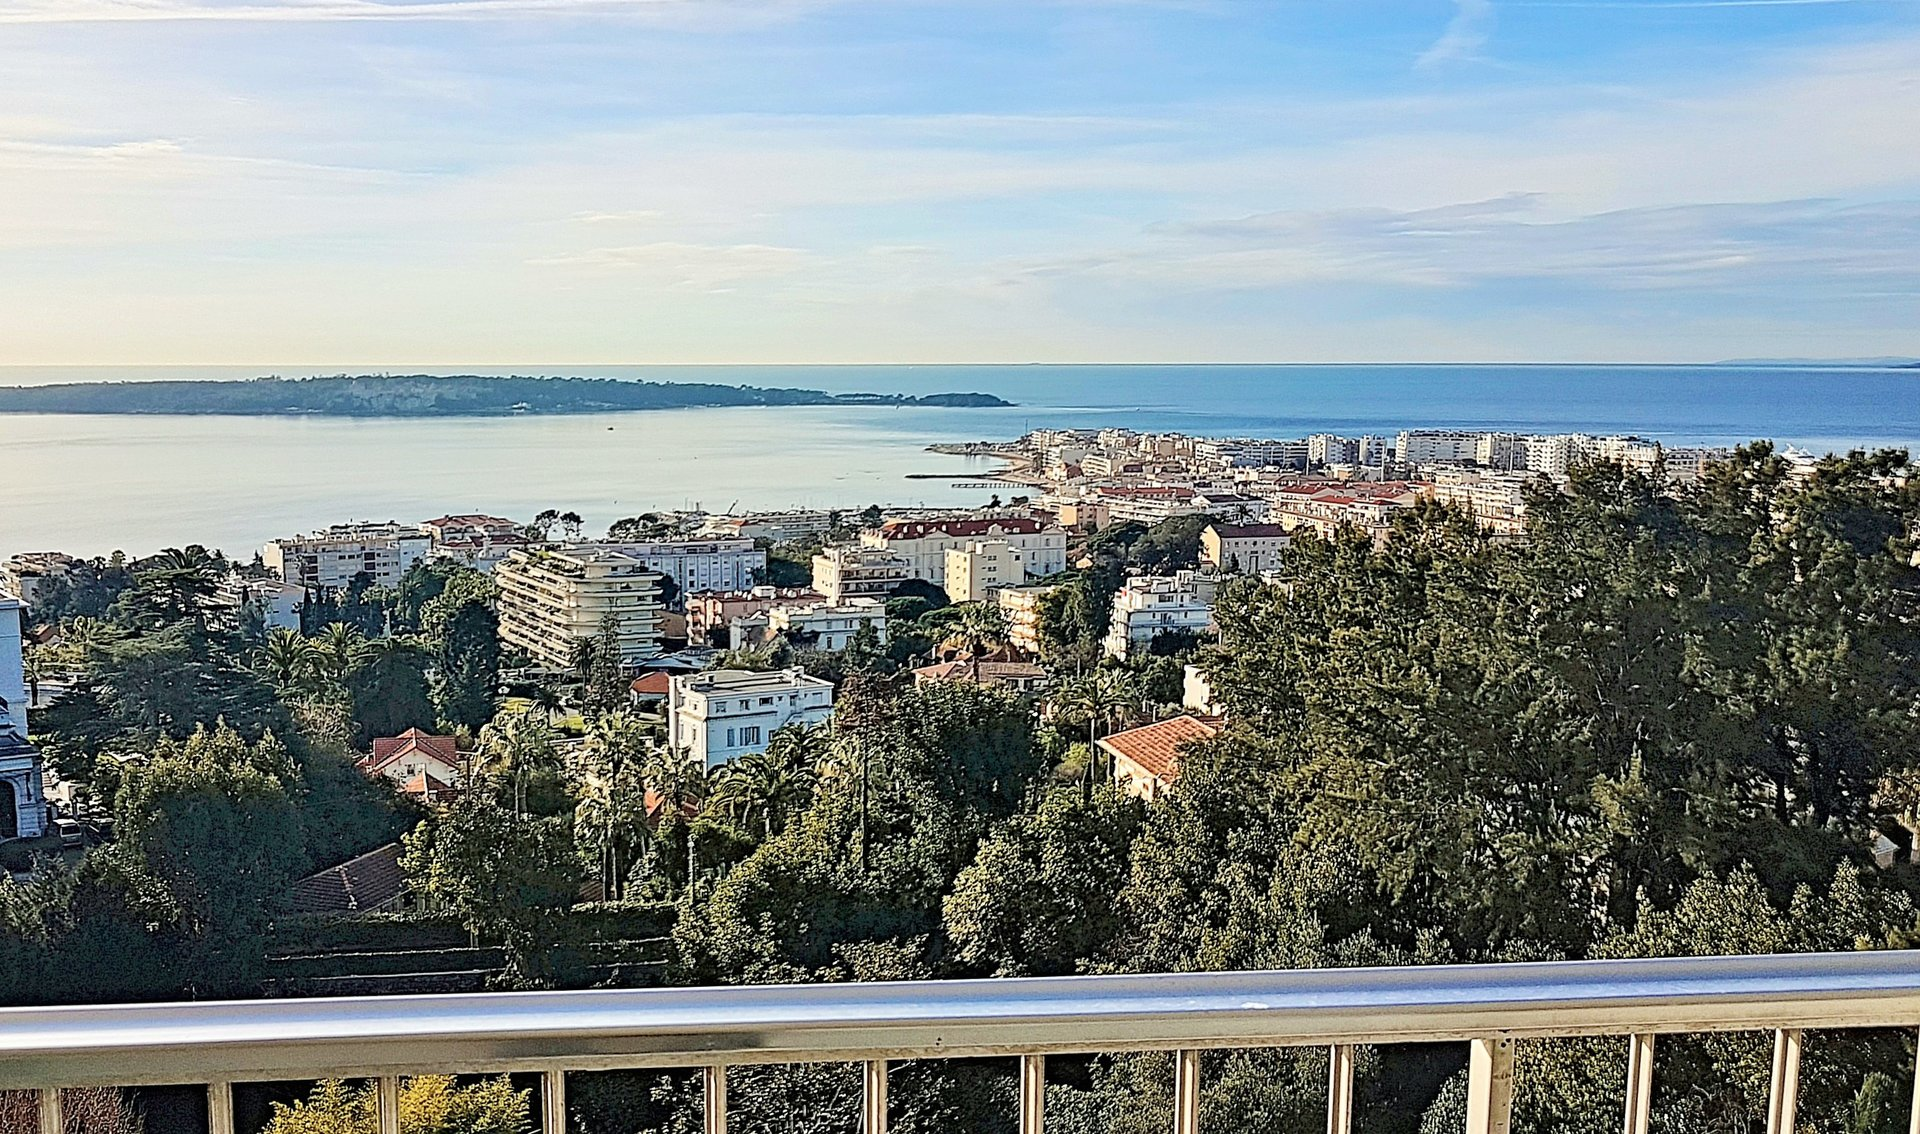 Cannes Californie Sea view apartment 3 bedroom flat 158sqm, top floor, Terrace, south, swimming pool, garage